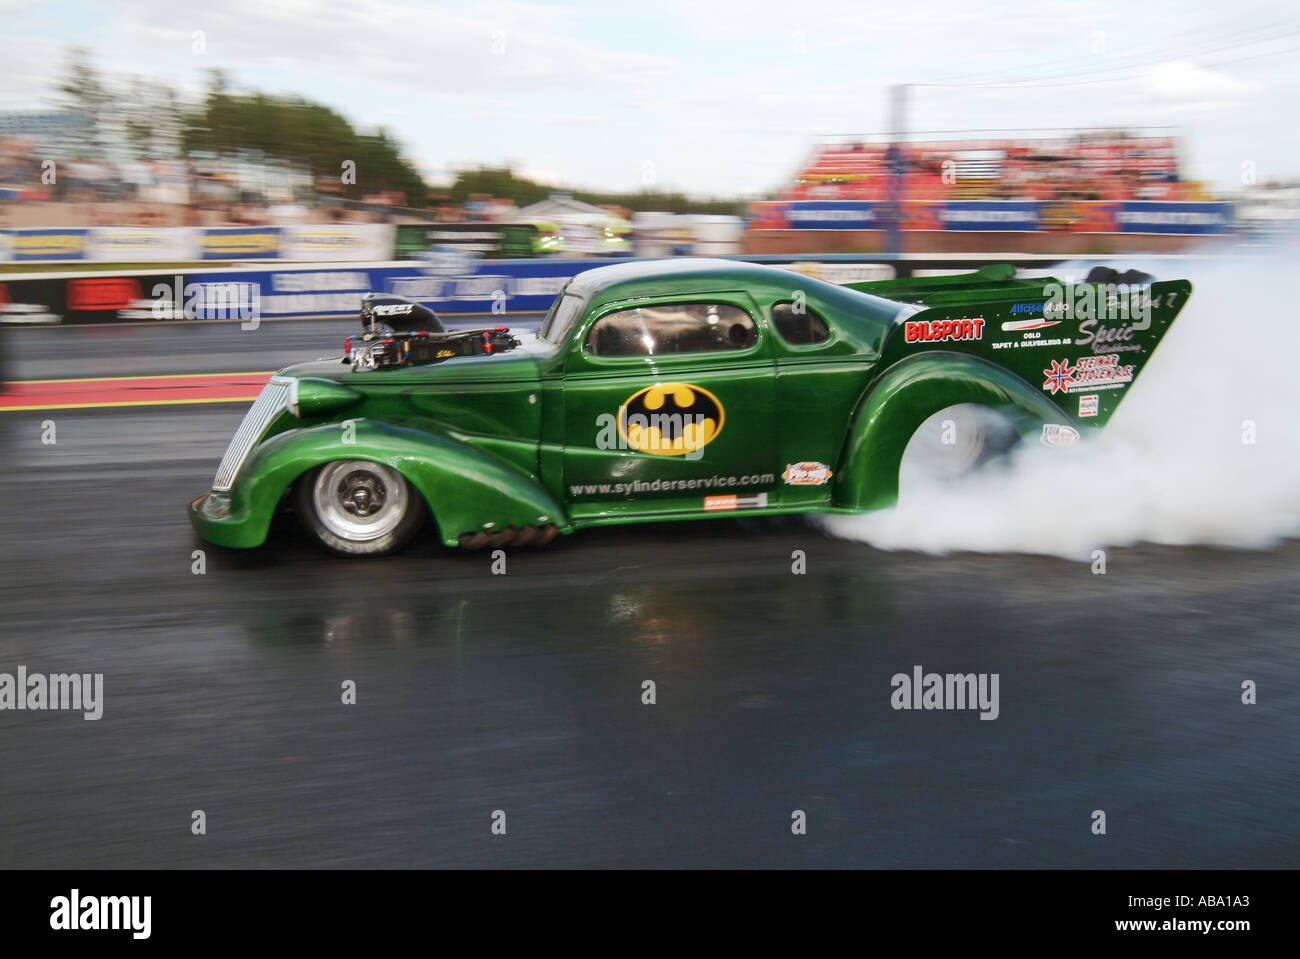 1939-chevy-pro-modified-dragster-burning